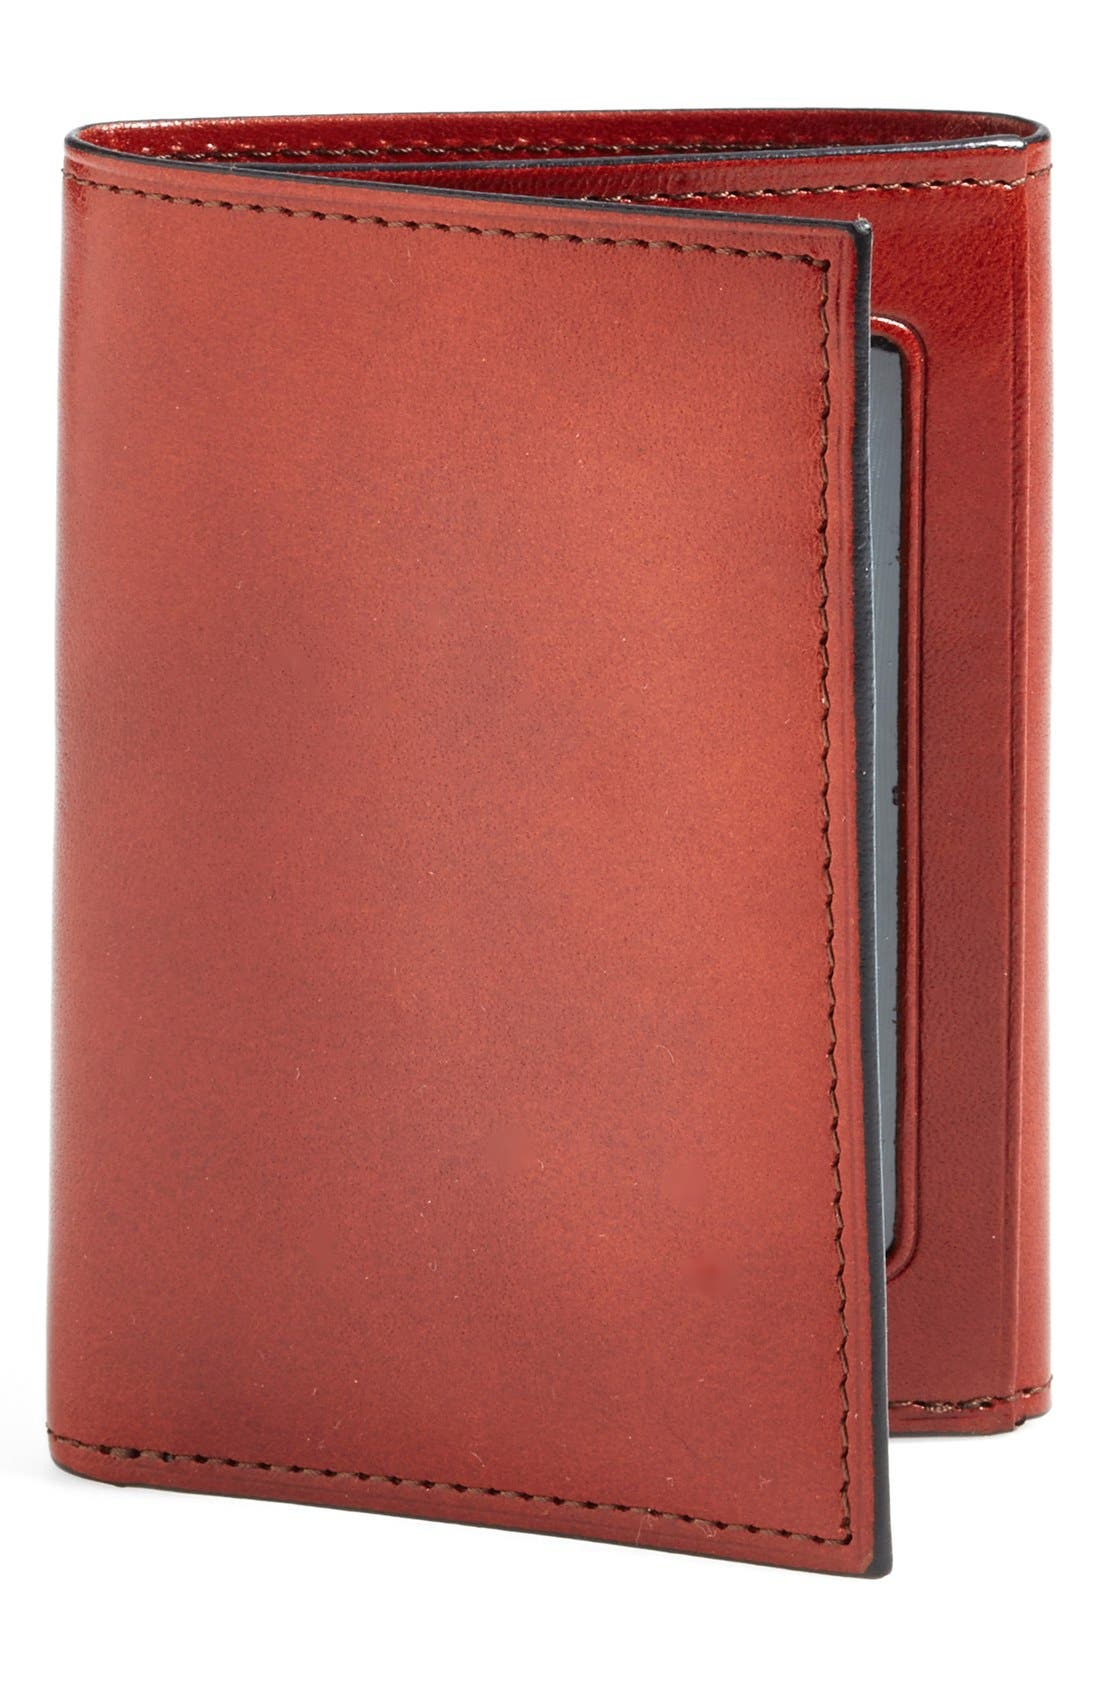 'Old Leather' Trifold Wallet,                             Main thumbnail 1, color,                             COGNAC